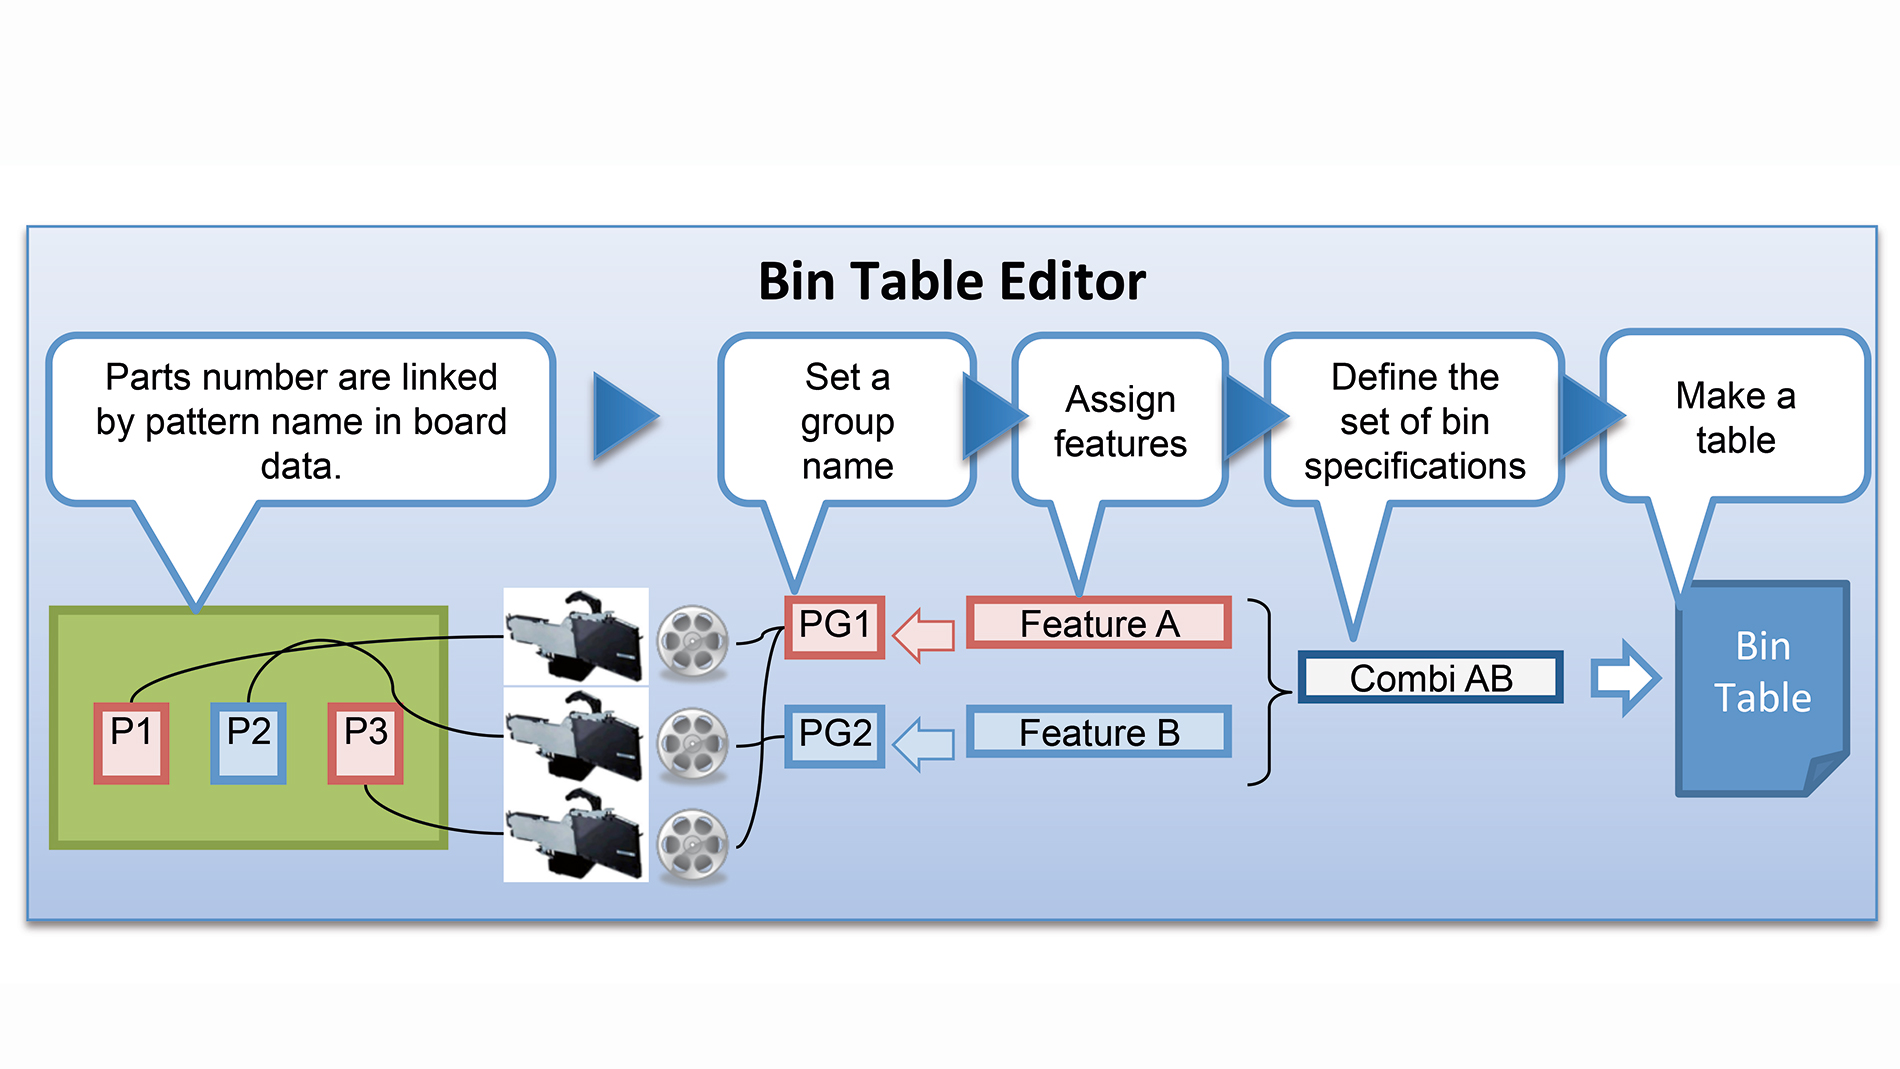 Figure 4: The BIN table editor enhances flexibility to handle unpredictable and changing inventory (Fig.: YAMAHA MOTOR EUROPE N.V.)